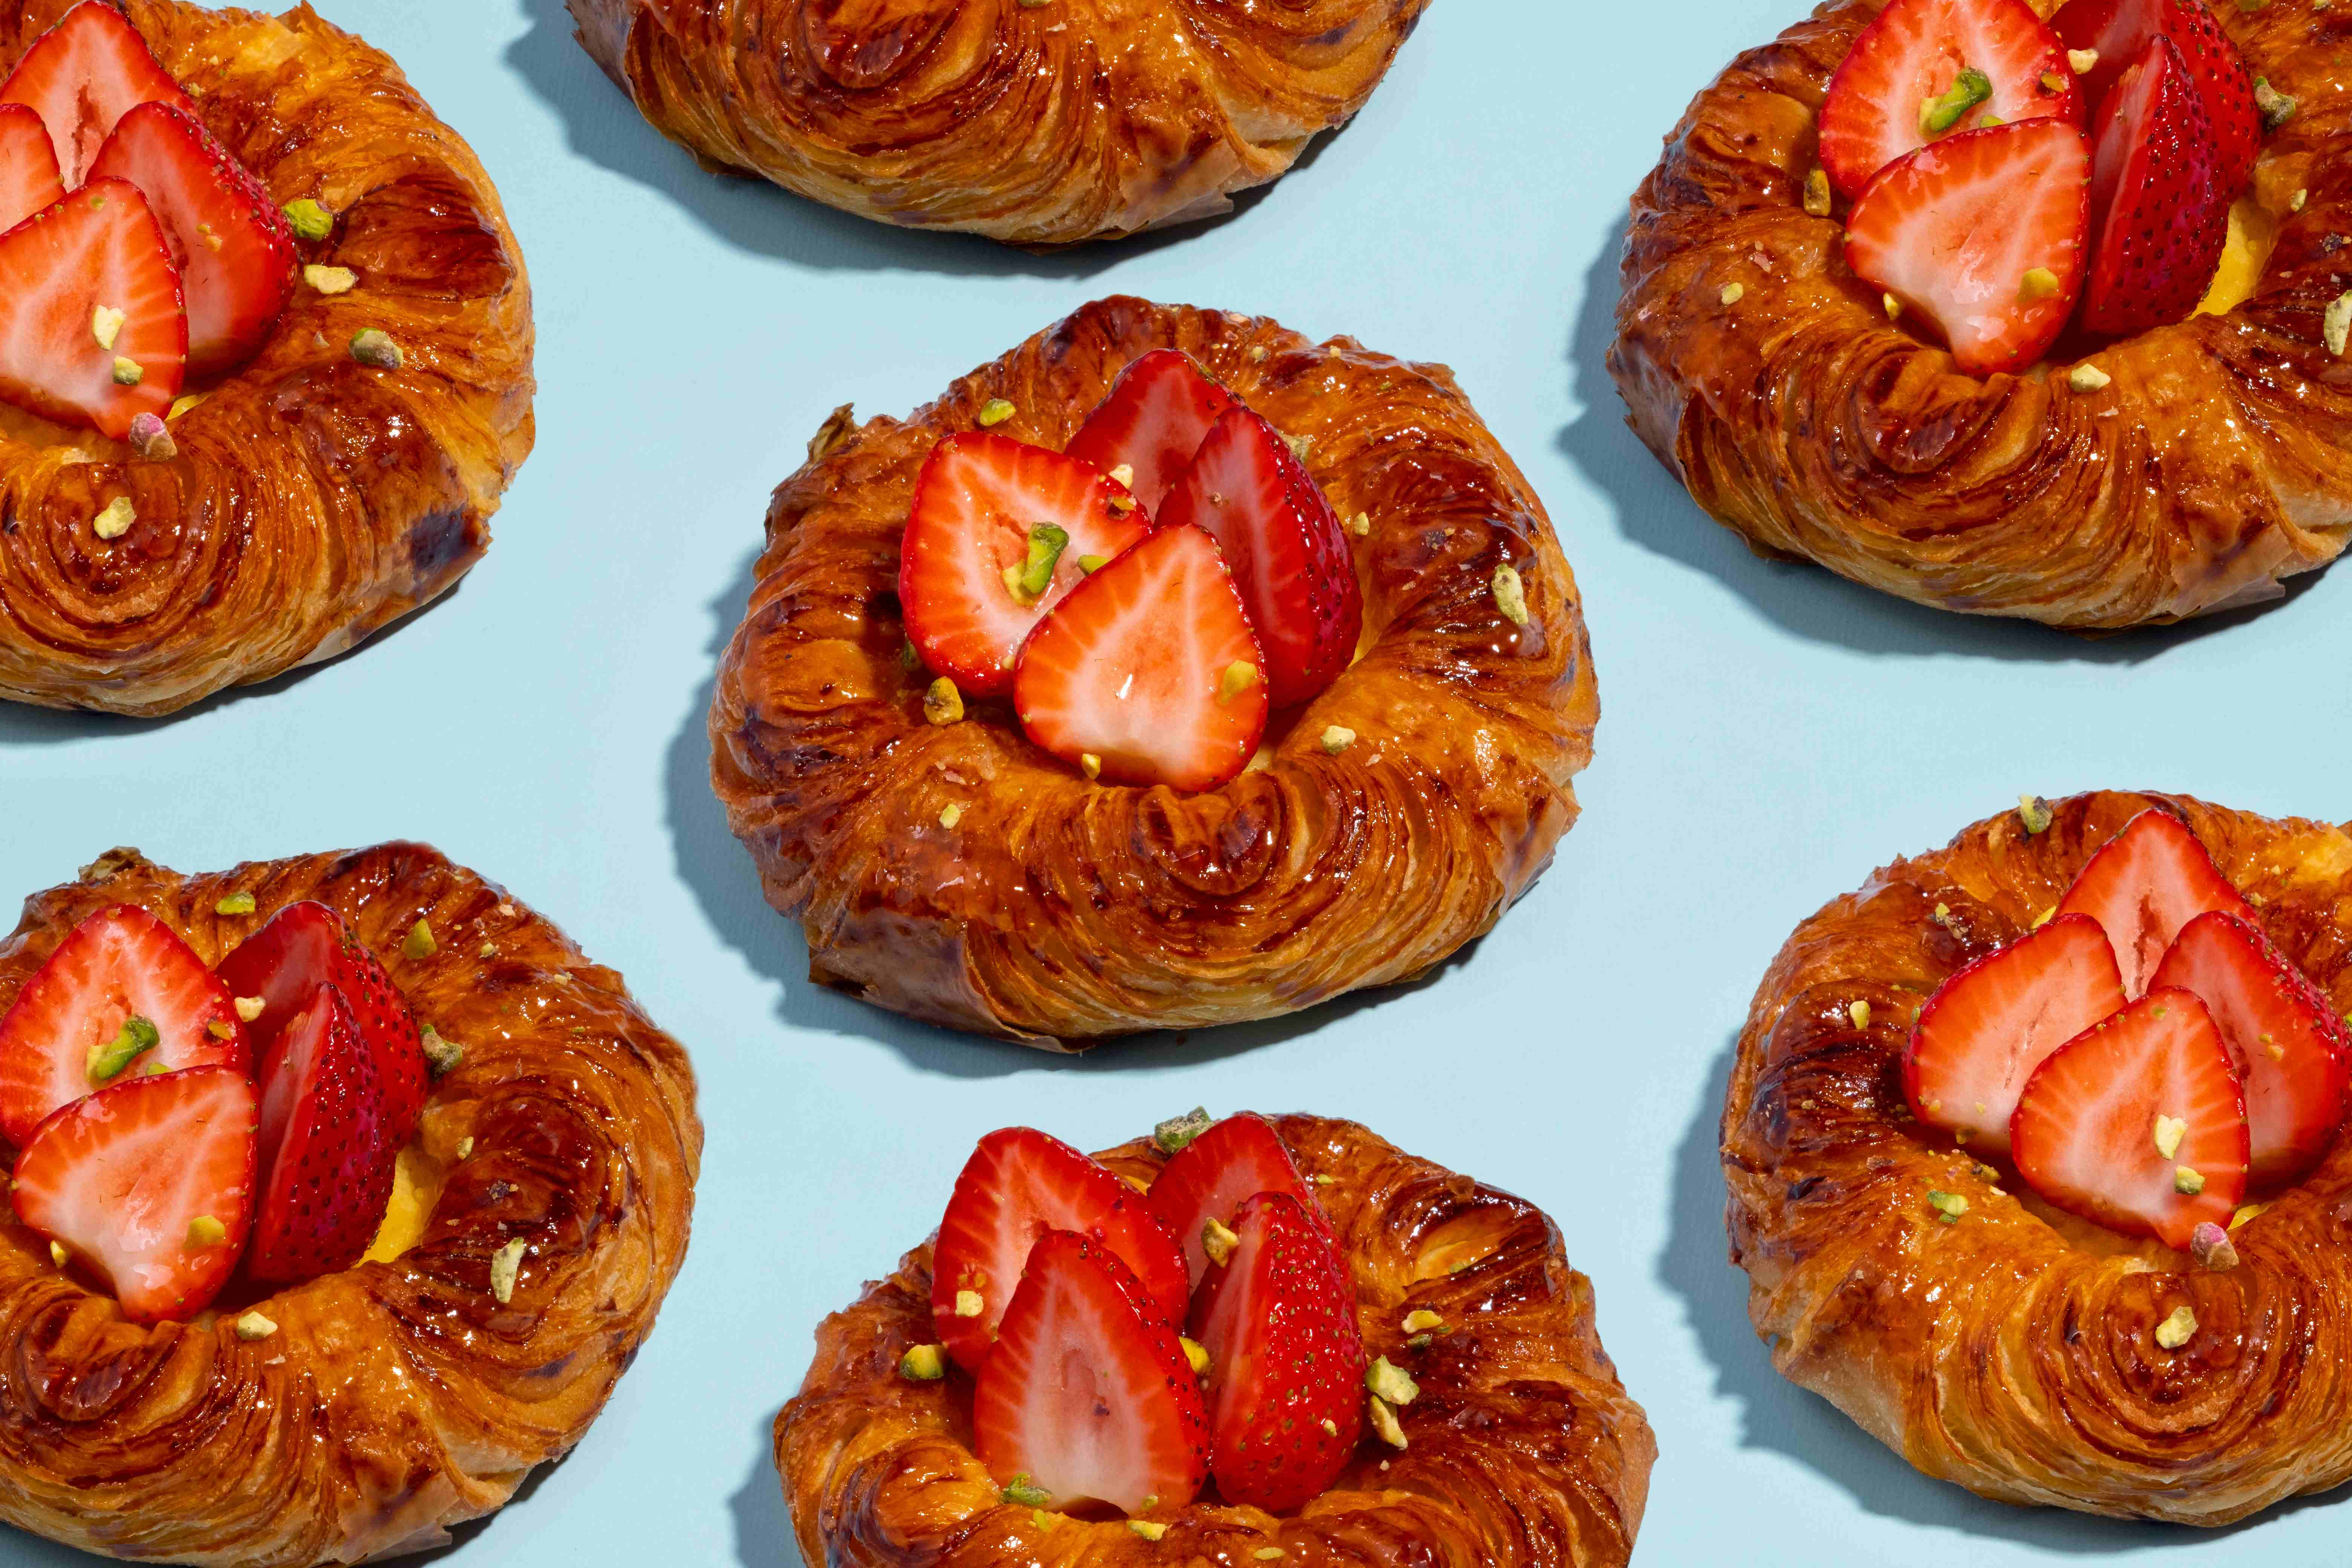 Bakehouse strawberry and pistachio danish